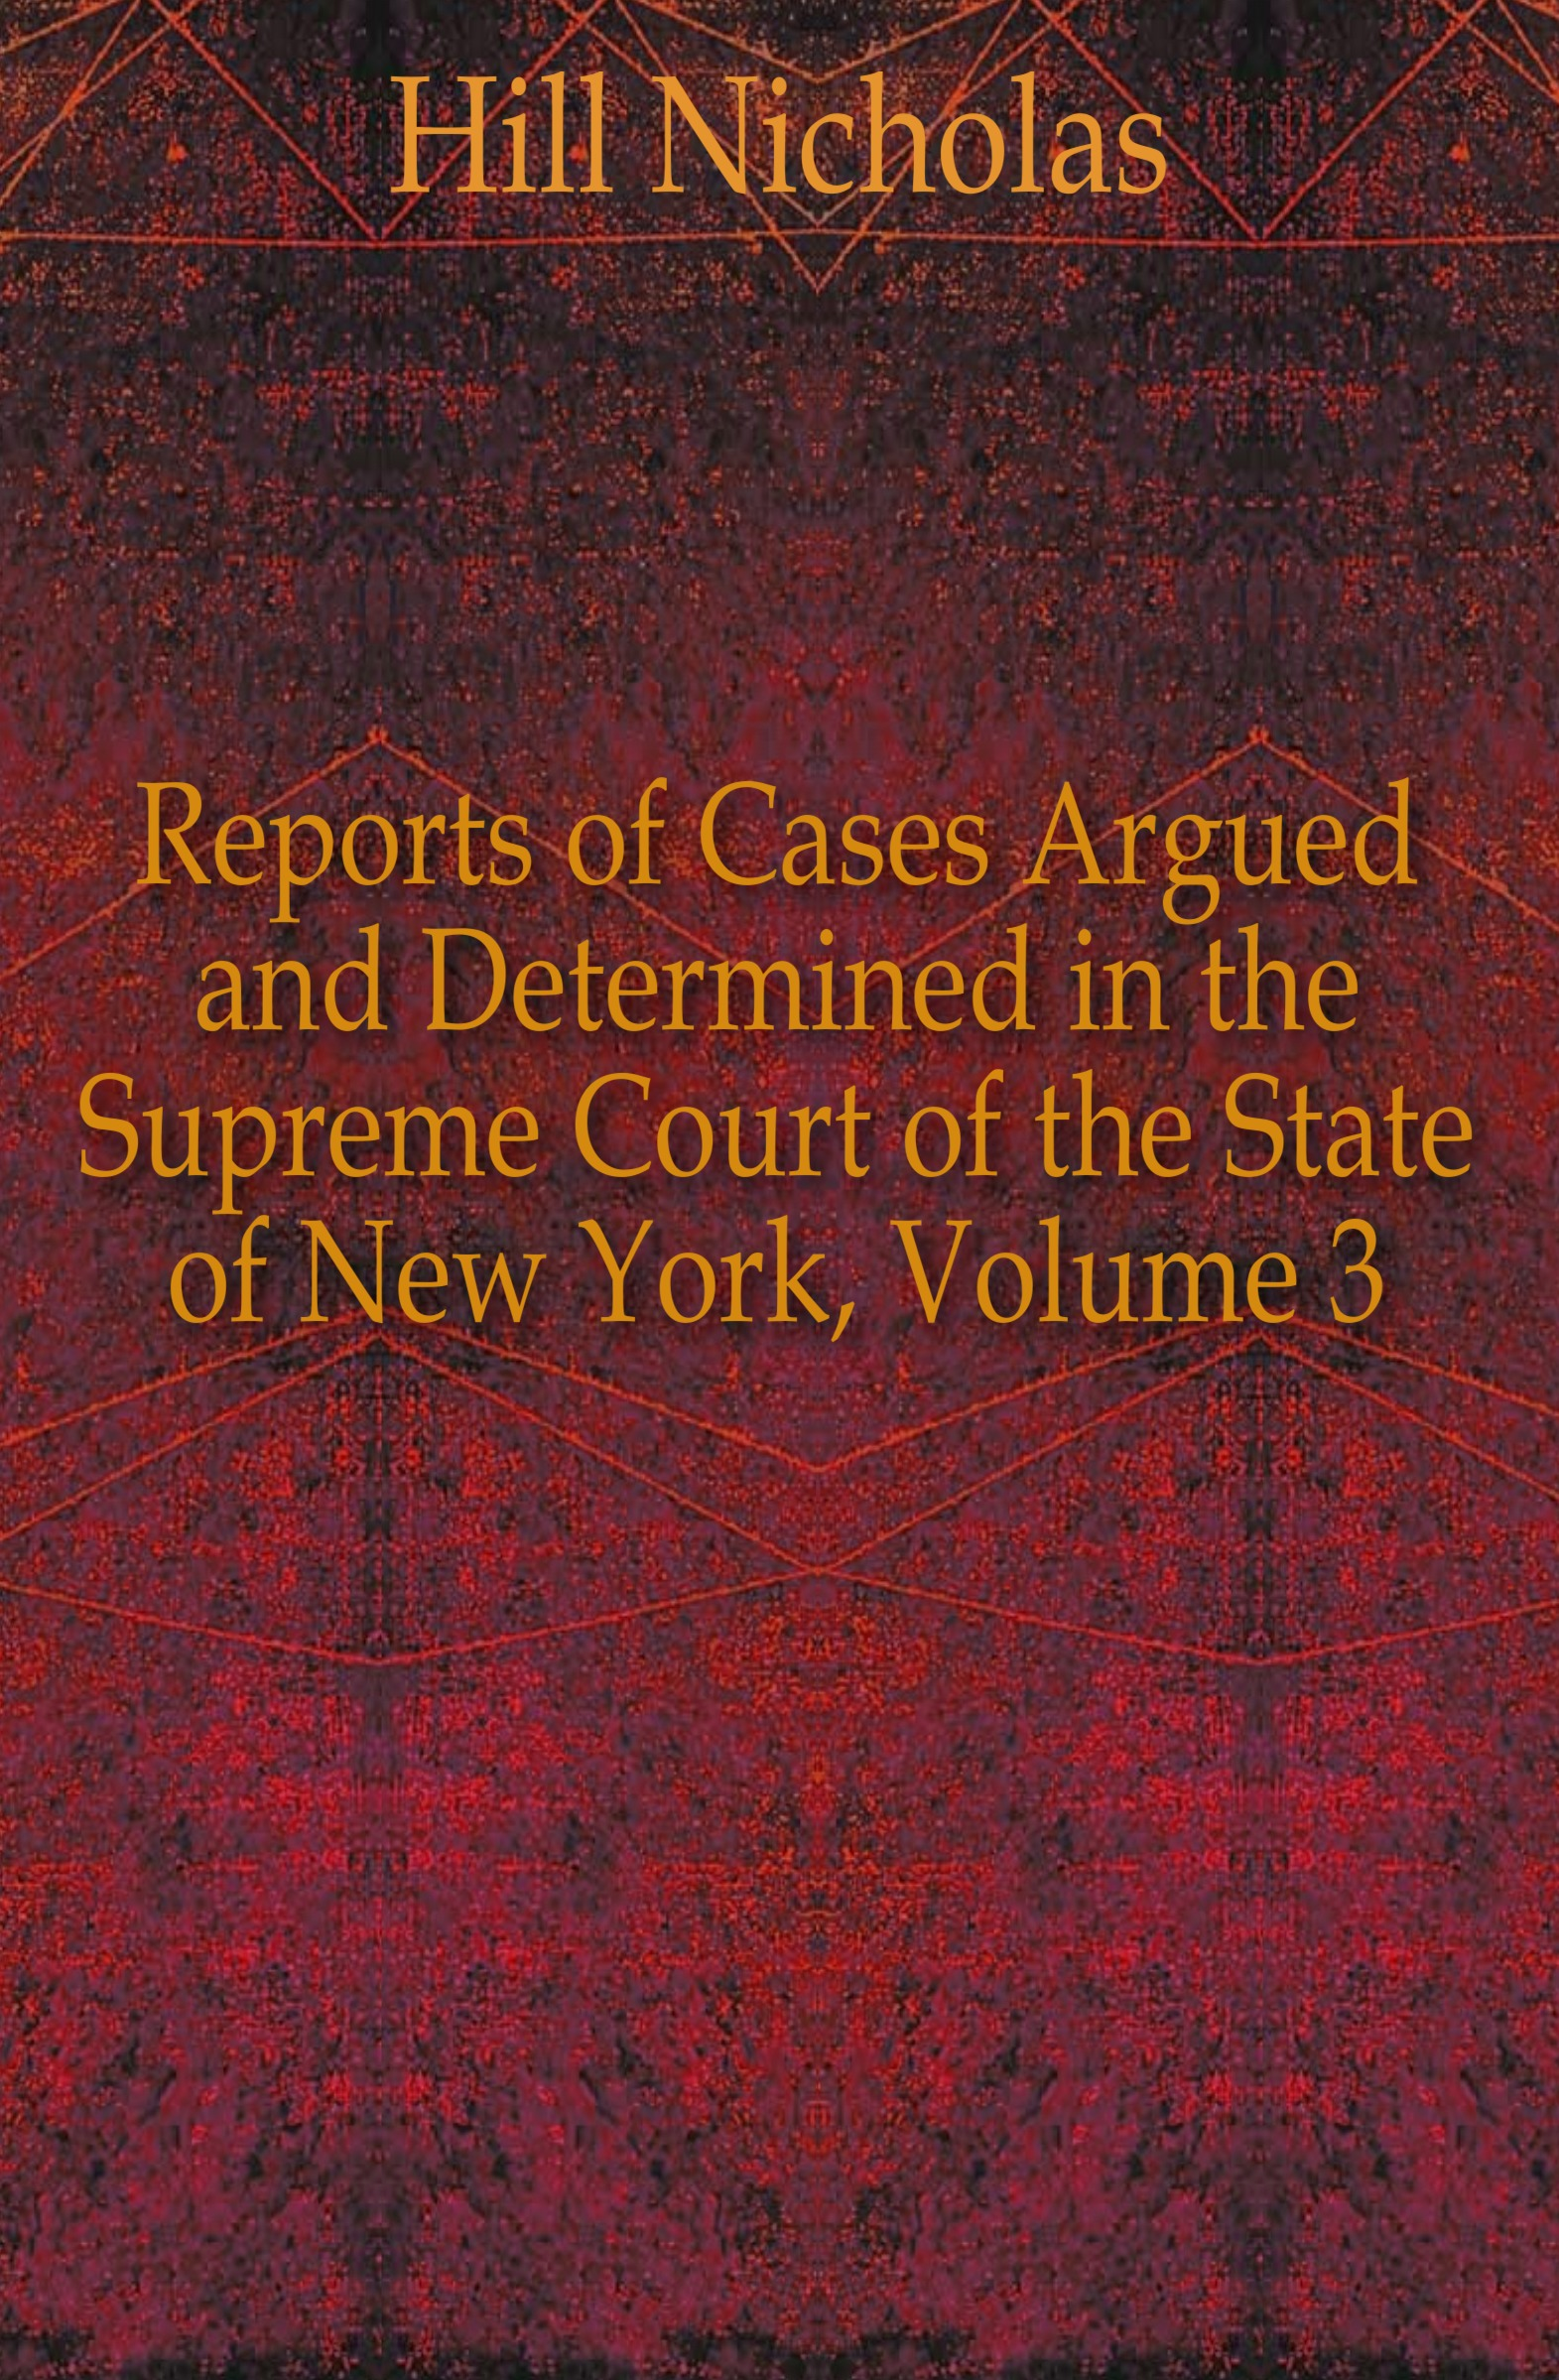 Hill Nicholas Reports of Cases Argued and Determined in the Supreme Court of the State of New York, Volume 3